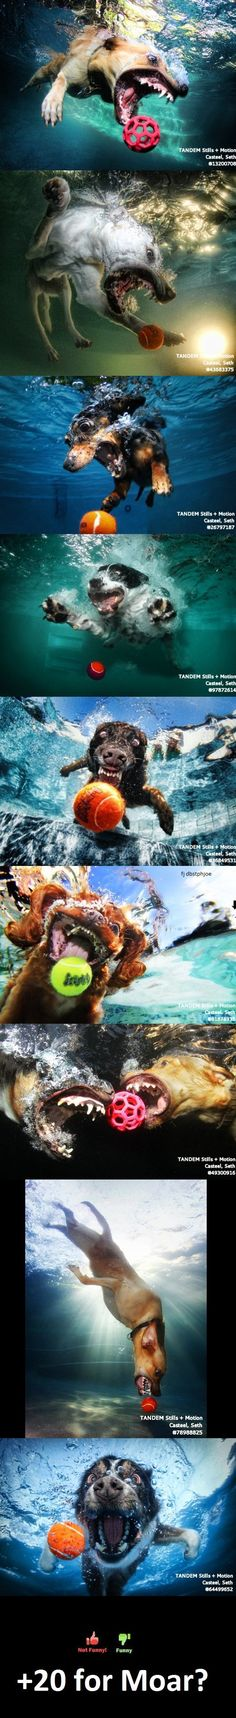 Dogs underwater! Most are funny, but am I the only one slightly terrified of a few lol